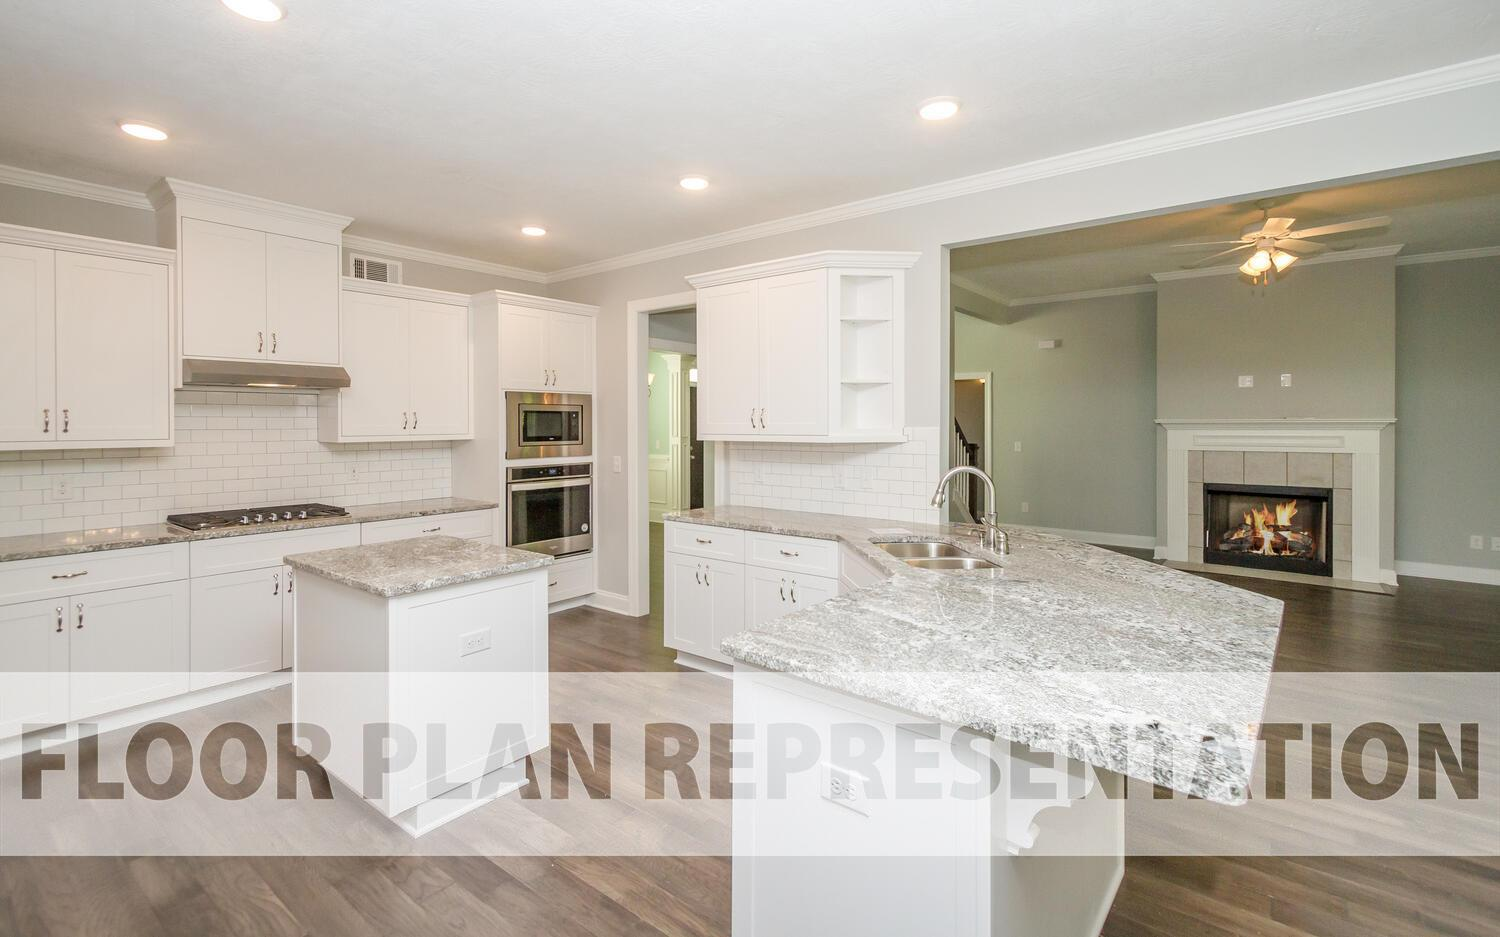 Kitchen featured in the Belmont Springs III By Ivey Residential in Augusta, GA